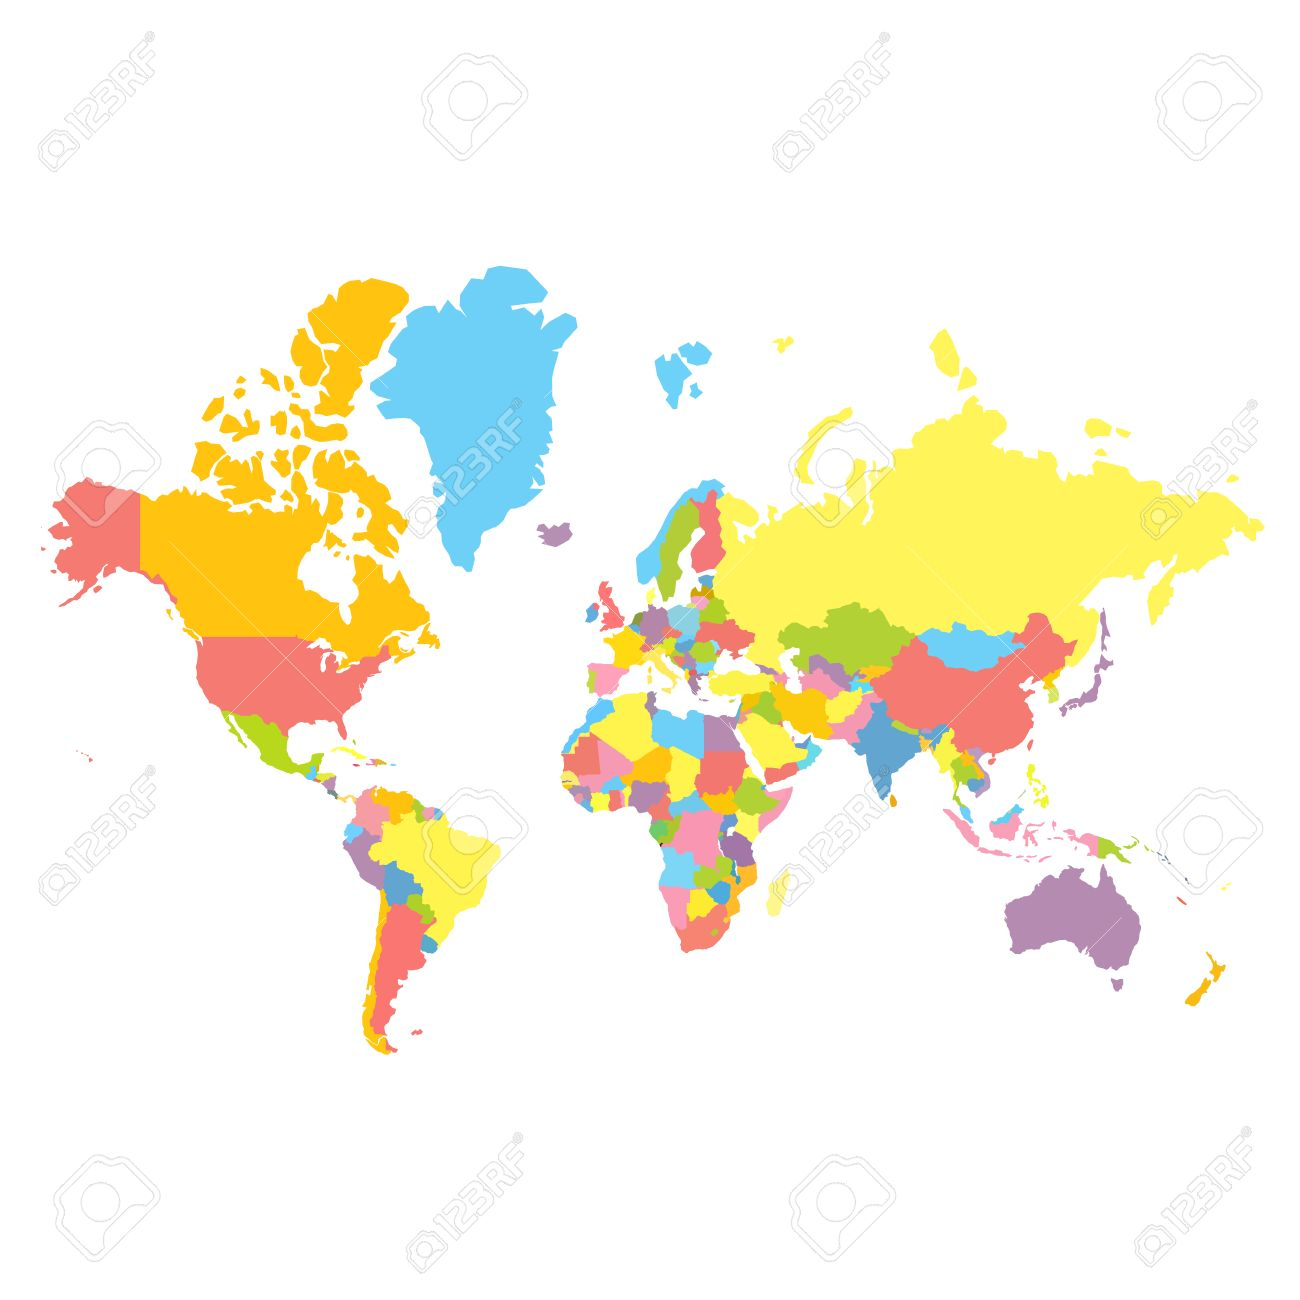 Colorfull political world map on white background each country colorfull political world map on white background each country colored in different color flat gumiabroncs Image collections